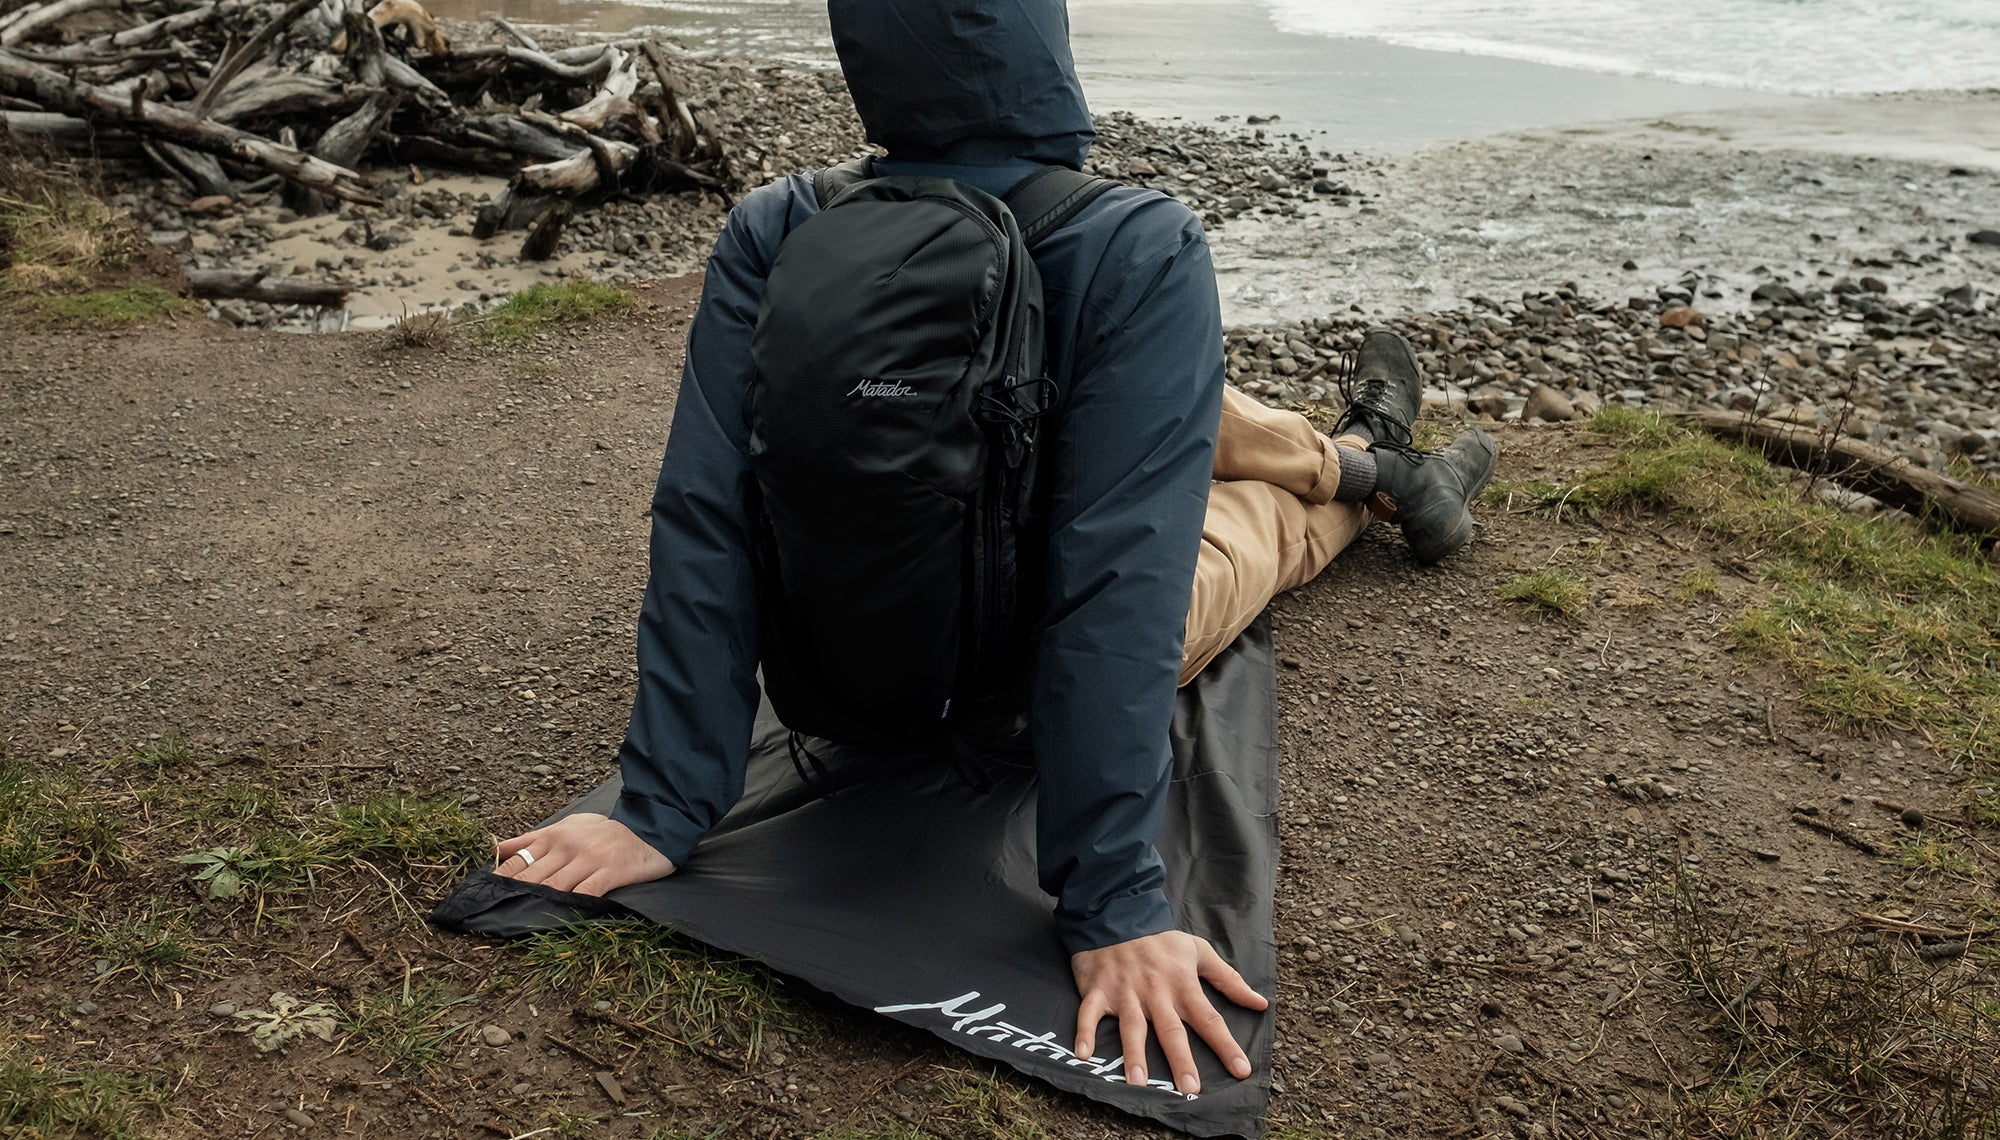 Man looking out at beach, sitting on pocket blanket